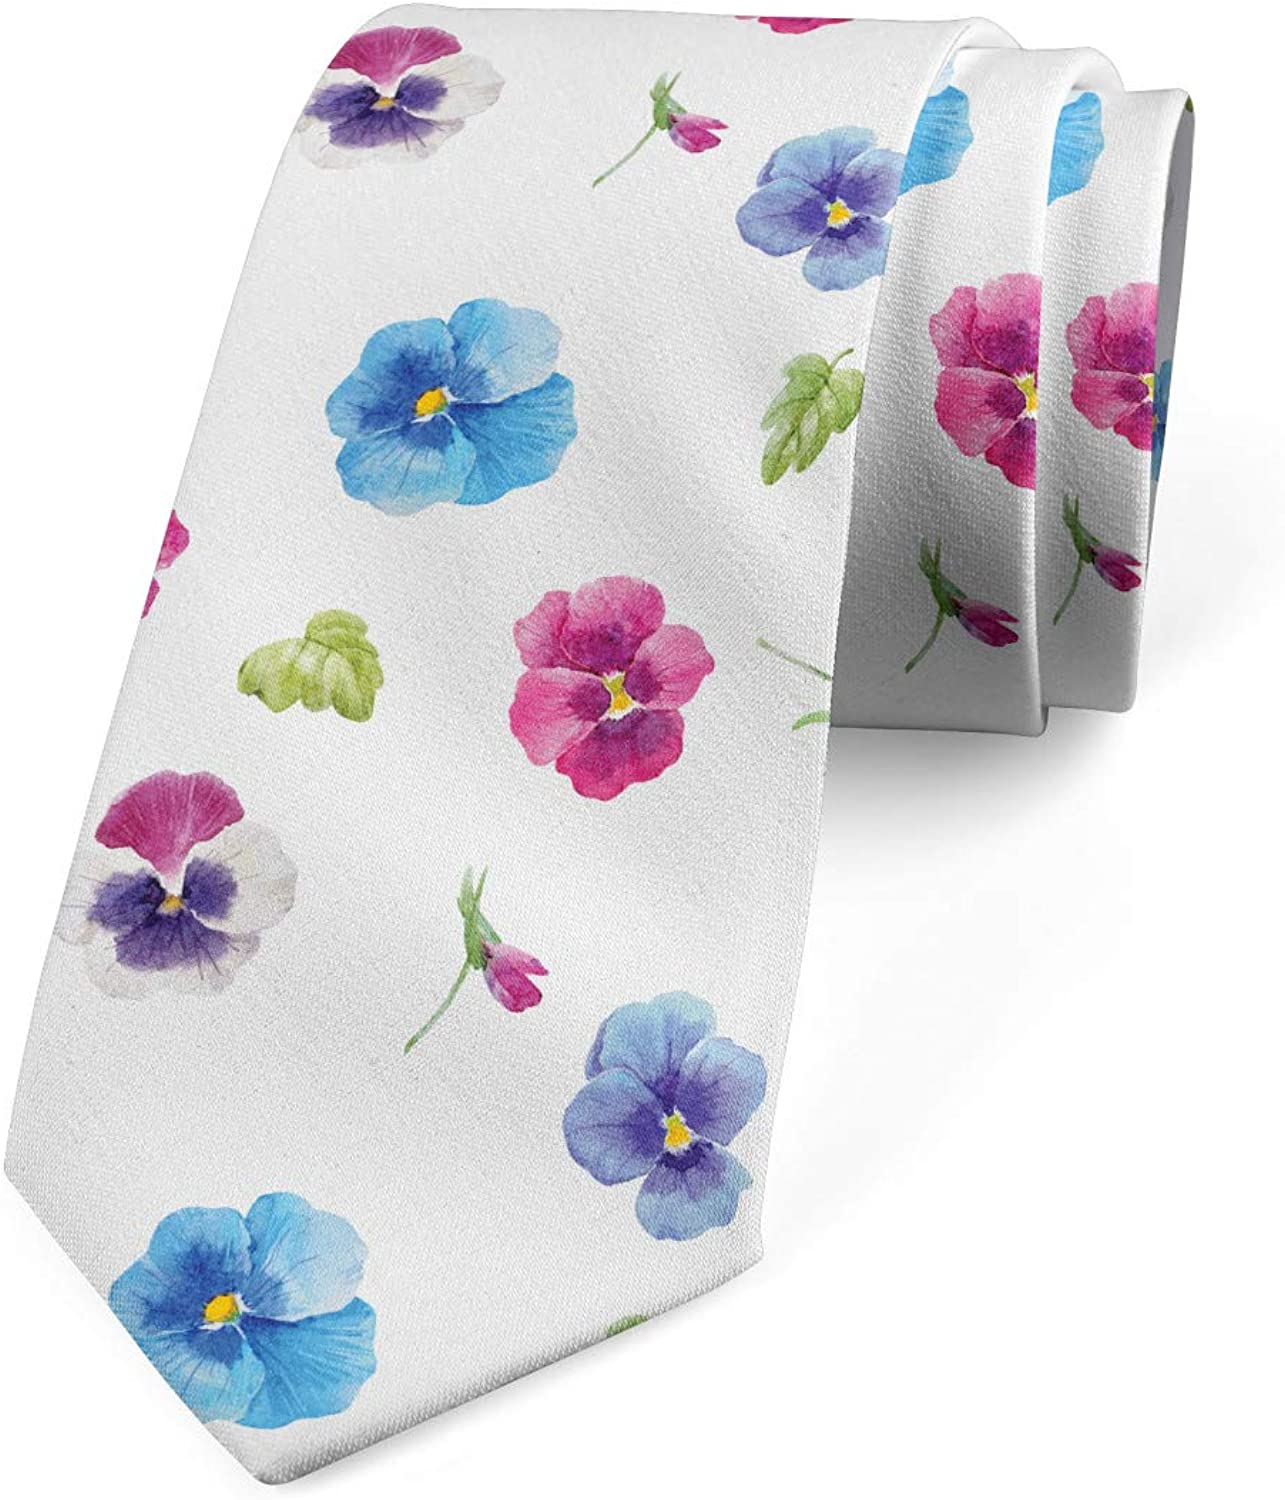 Ambesonne Necktie, Pansy Petals and Sprouts, Dress Tie, 3.7